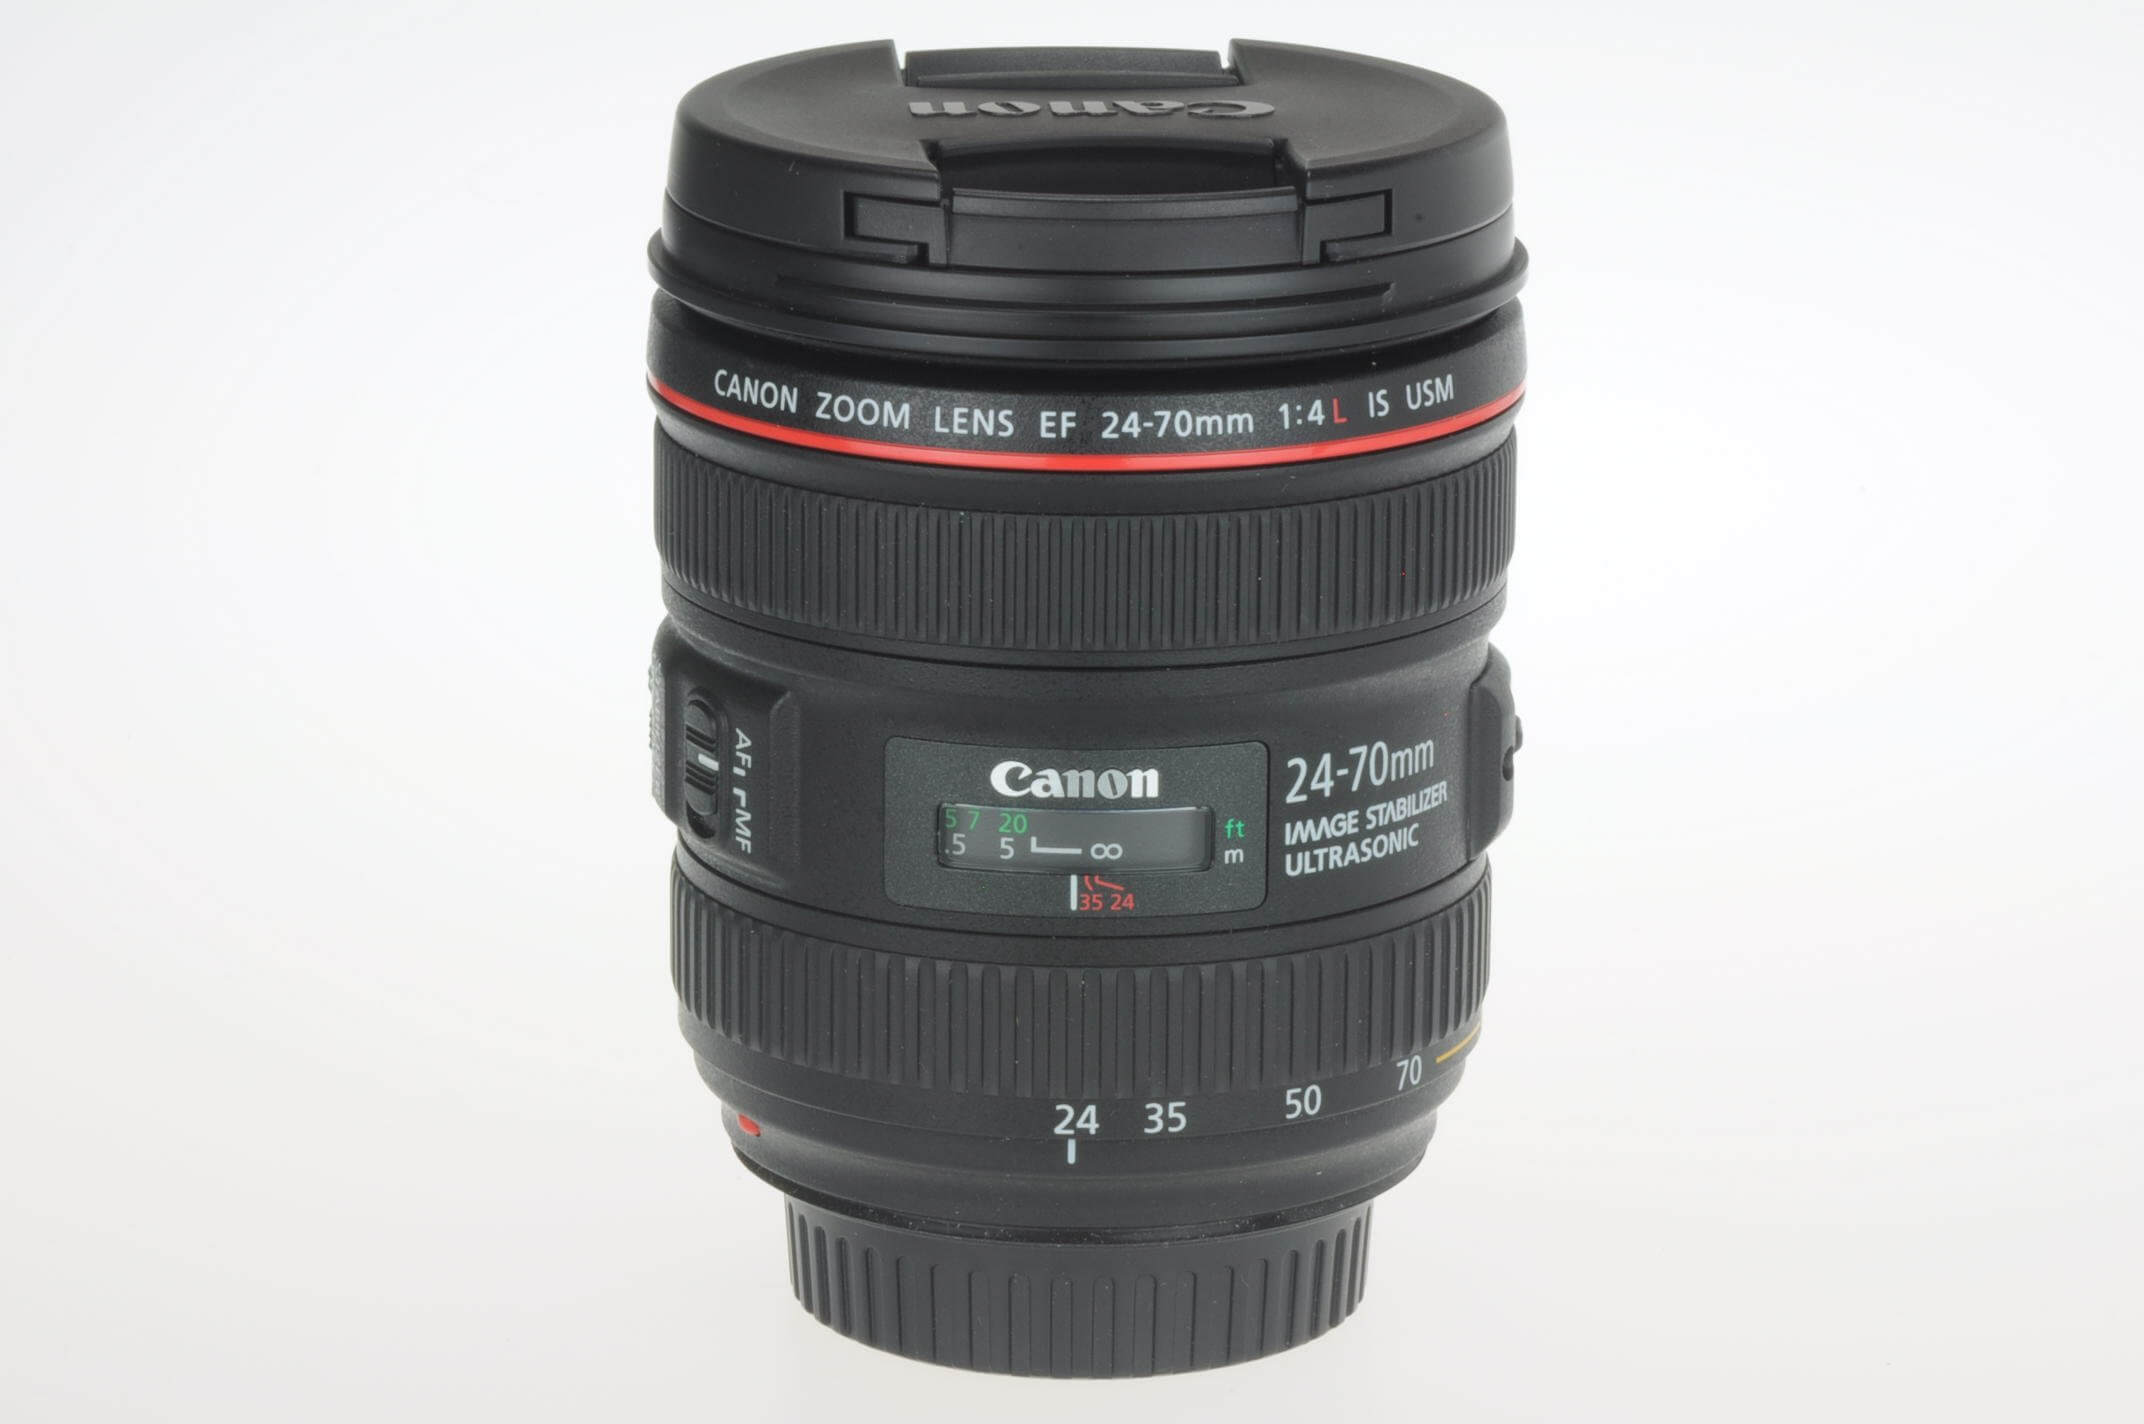 Canon 24-70mm f4 L IS USM lens, UK Supplied, bought new 27th May!